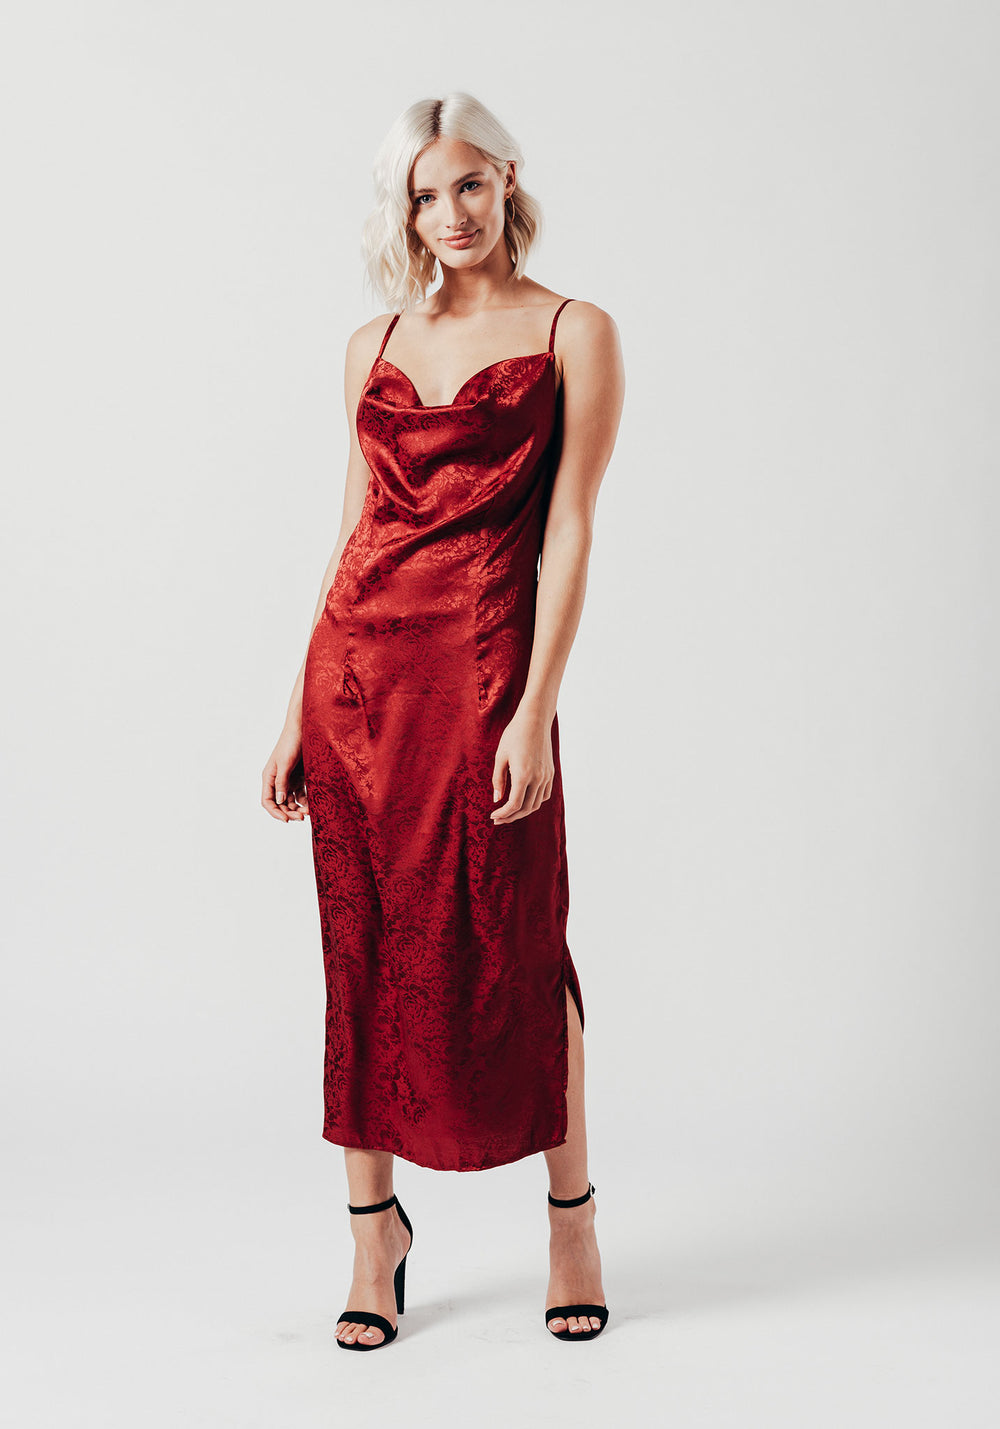 Cowl Neck Slip Dress with Side Slit in Wine Red